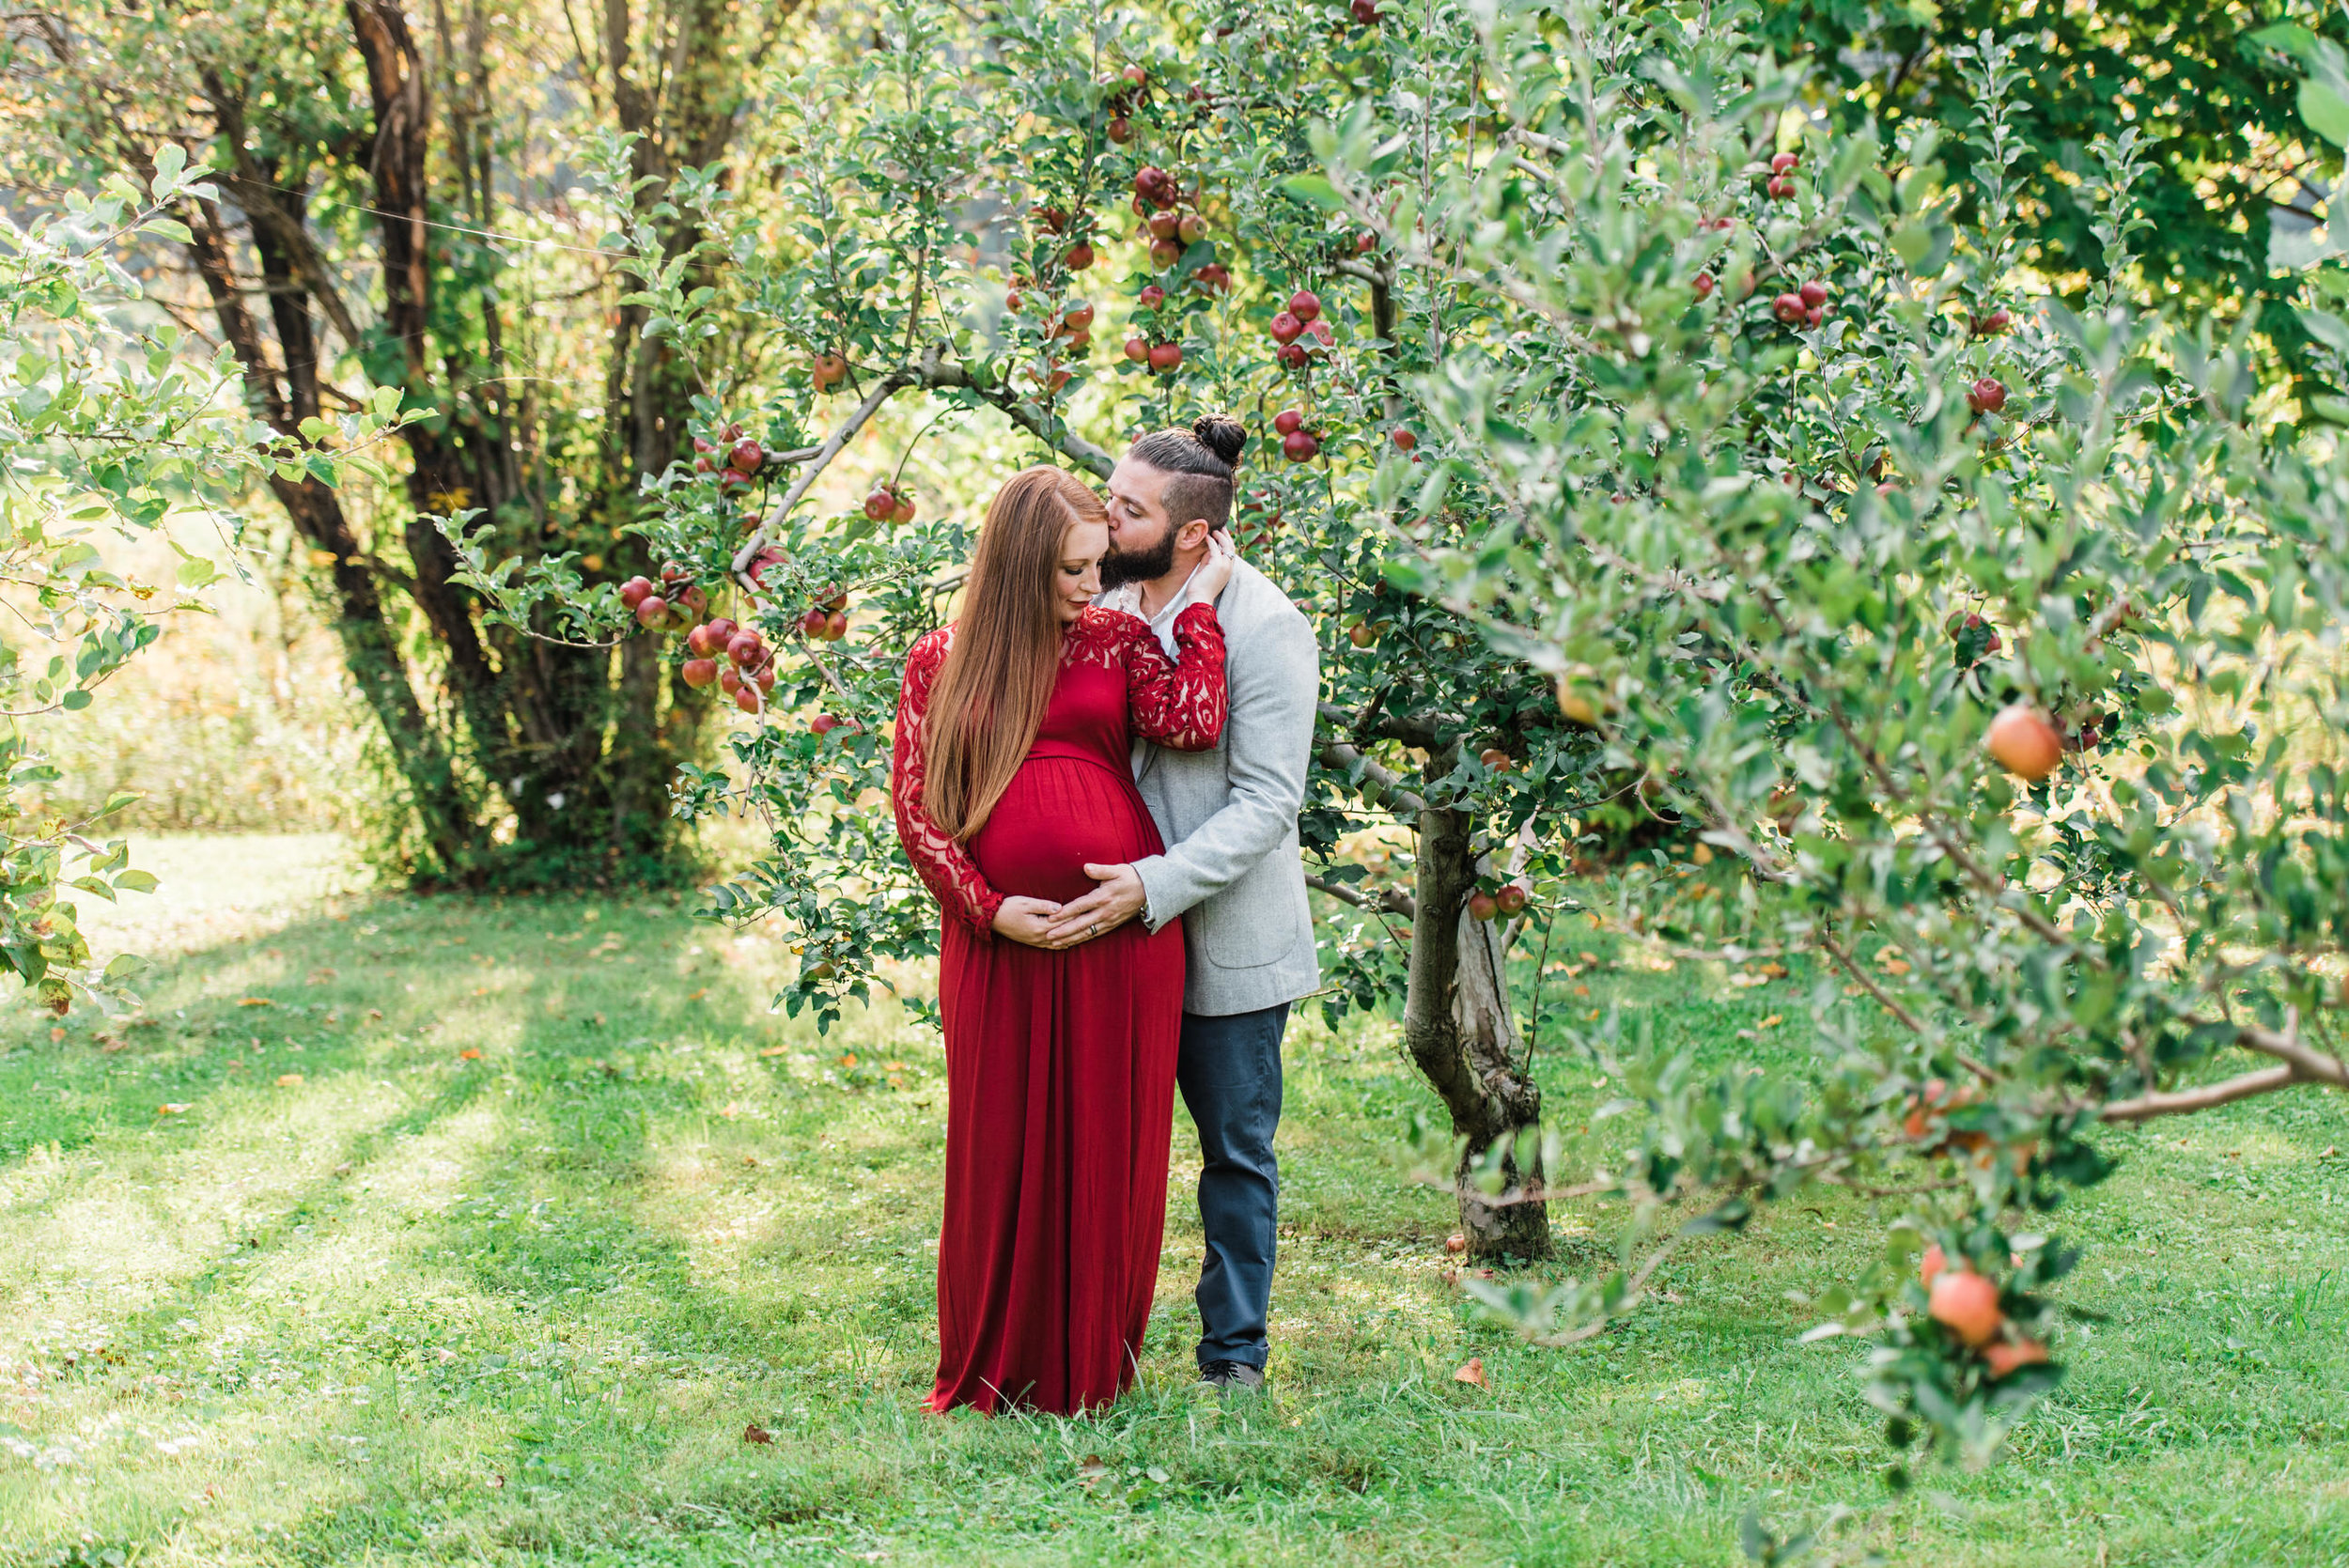 pittsburgh-maternity-photographers-winery-apple-orchard-session_31.jpg